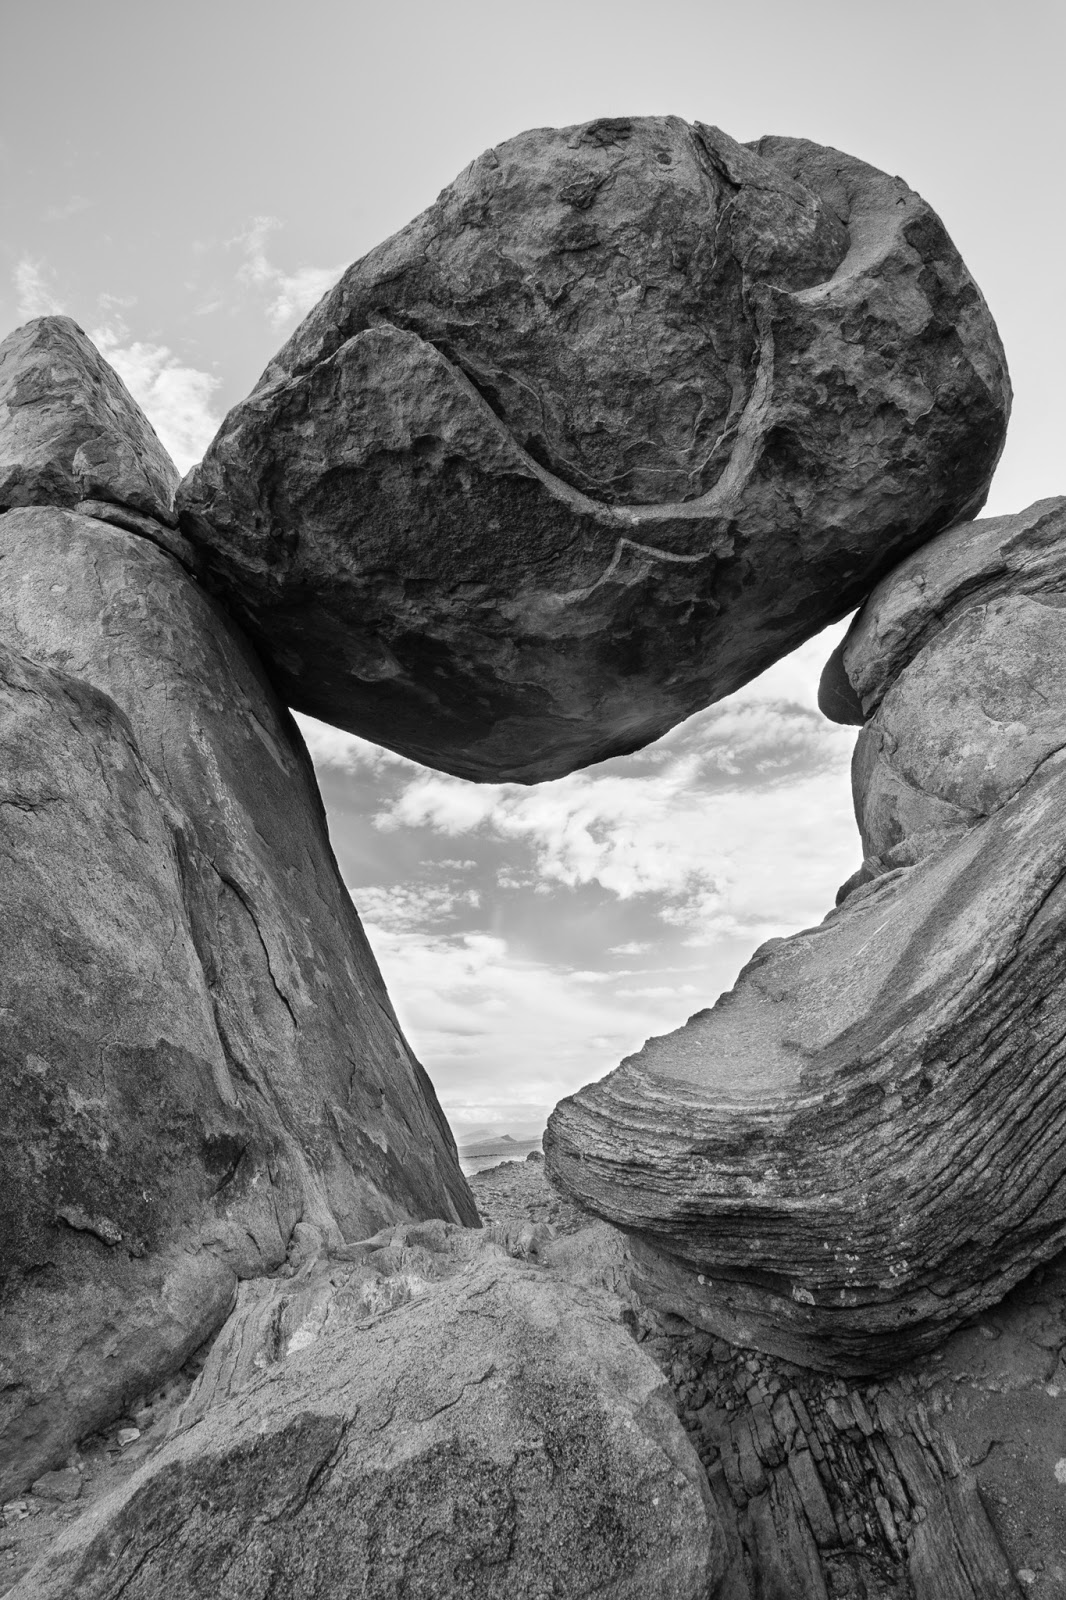 Balanced Rock, Big Bend National Park